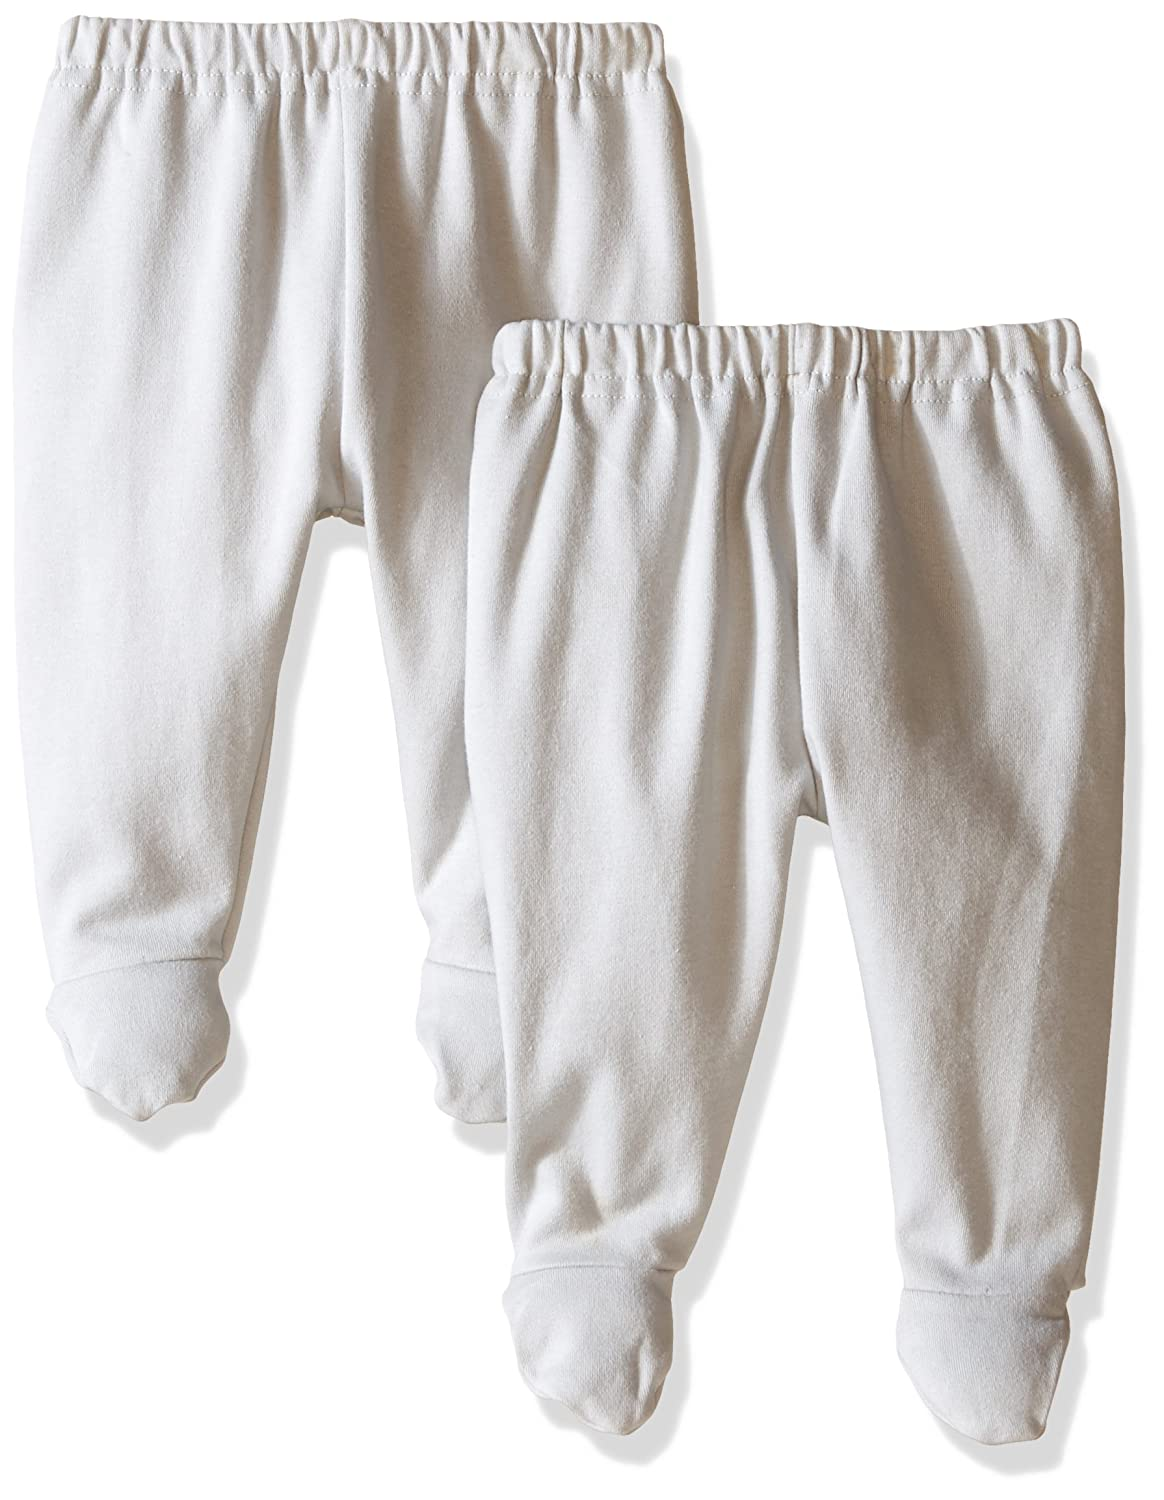 giggle Baby 2 Pack Footed Pants 22710